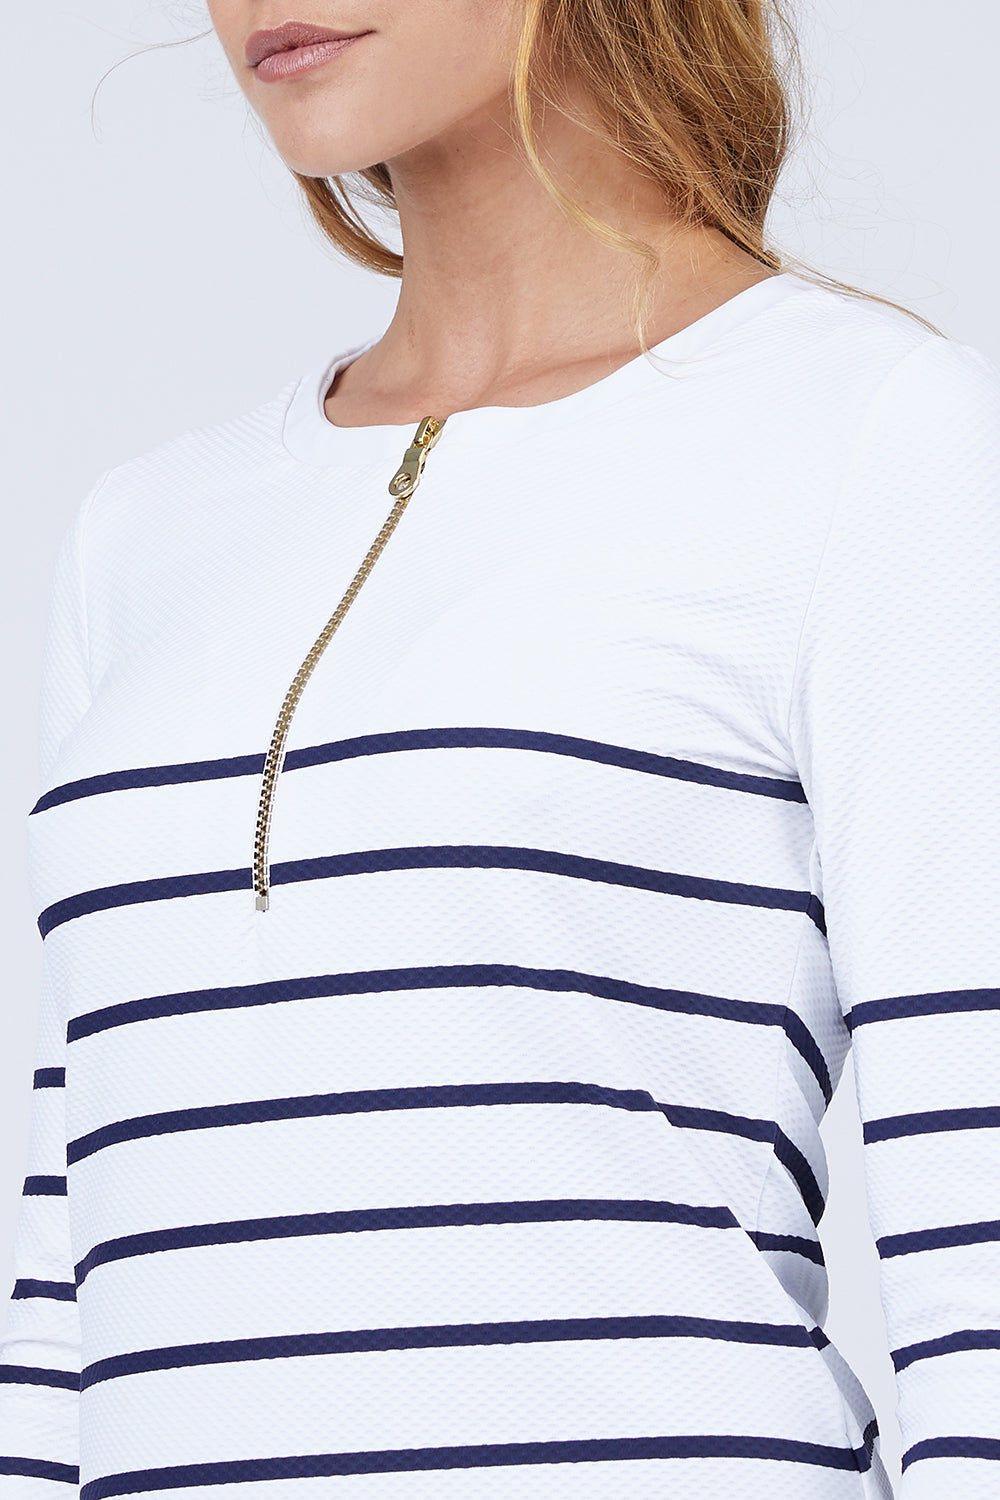 HEIDI KLEIN Rash Vest - Nautical Stripe Print Bikini Top | Nautical Stripe Print | Heidi Klein Rash Vest - Nautical Stripe. Features:  Rash vests in block colors and slimline stripes swimsuits Impeccably cut for a flattering fit from technically advanced textured fabric Finished with beautifully weighted hardware Composition: 85% Polyamide 15% Elastane Front View